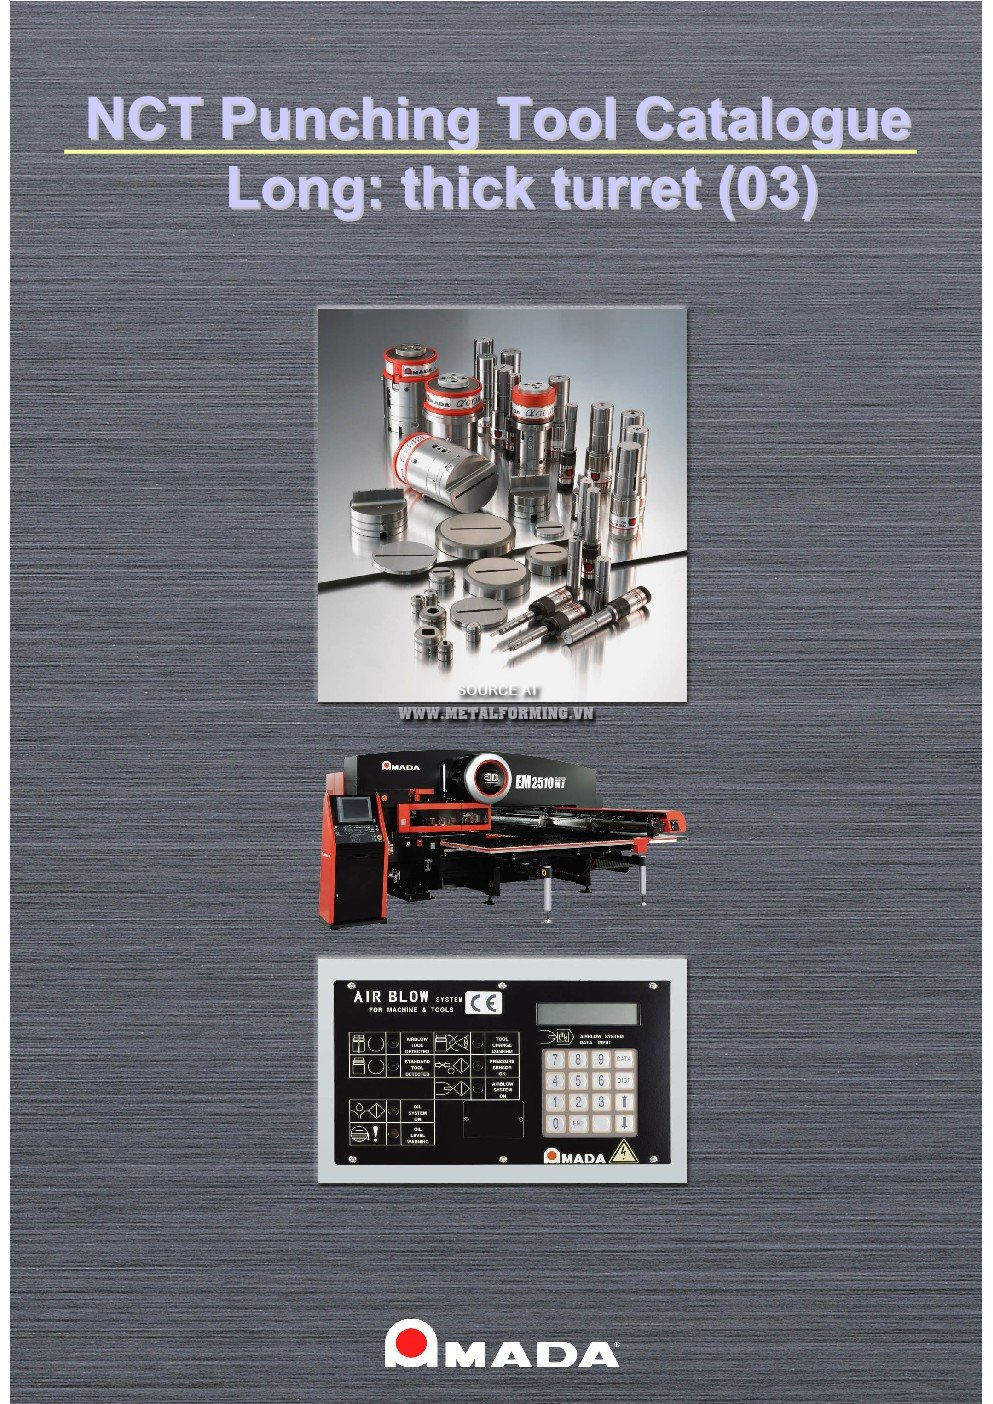 AMADA NCT PUNCHING TOOL CATALOGUE